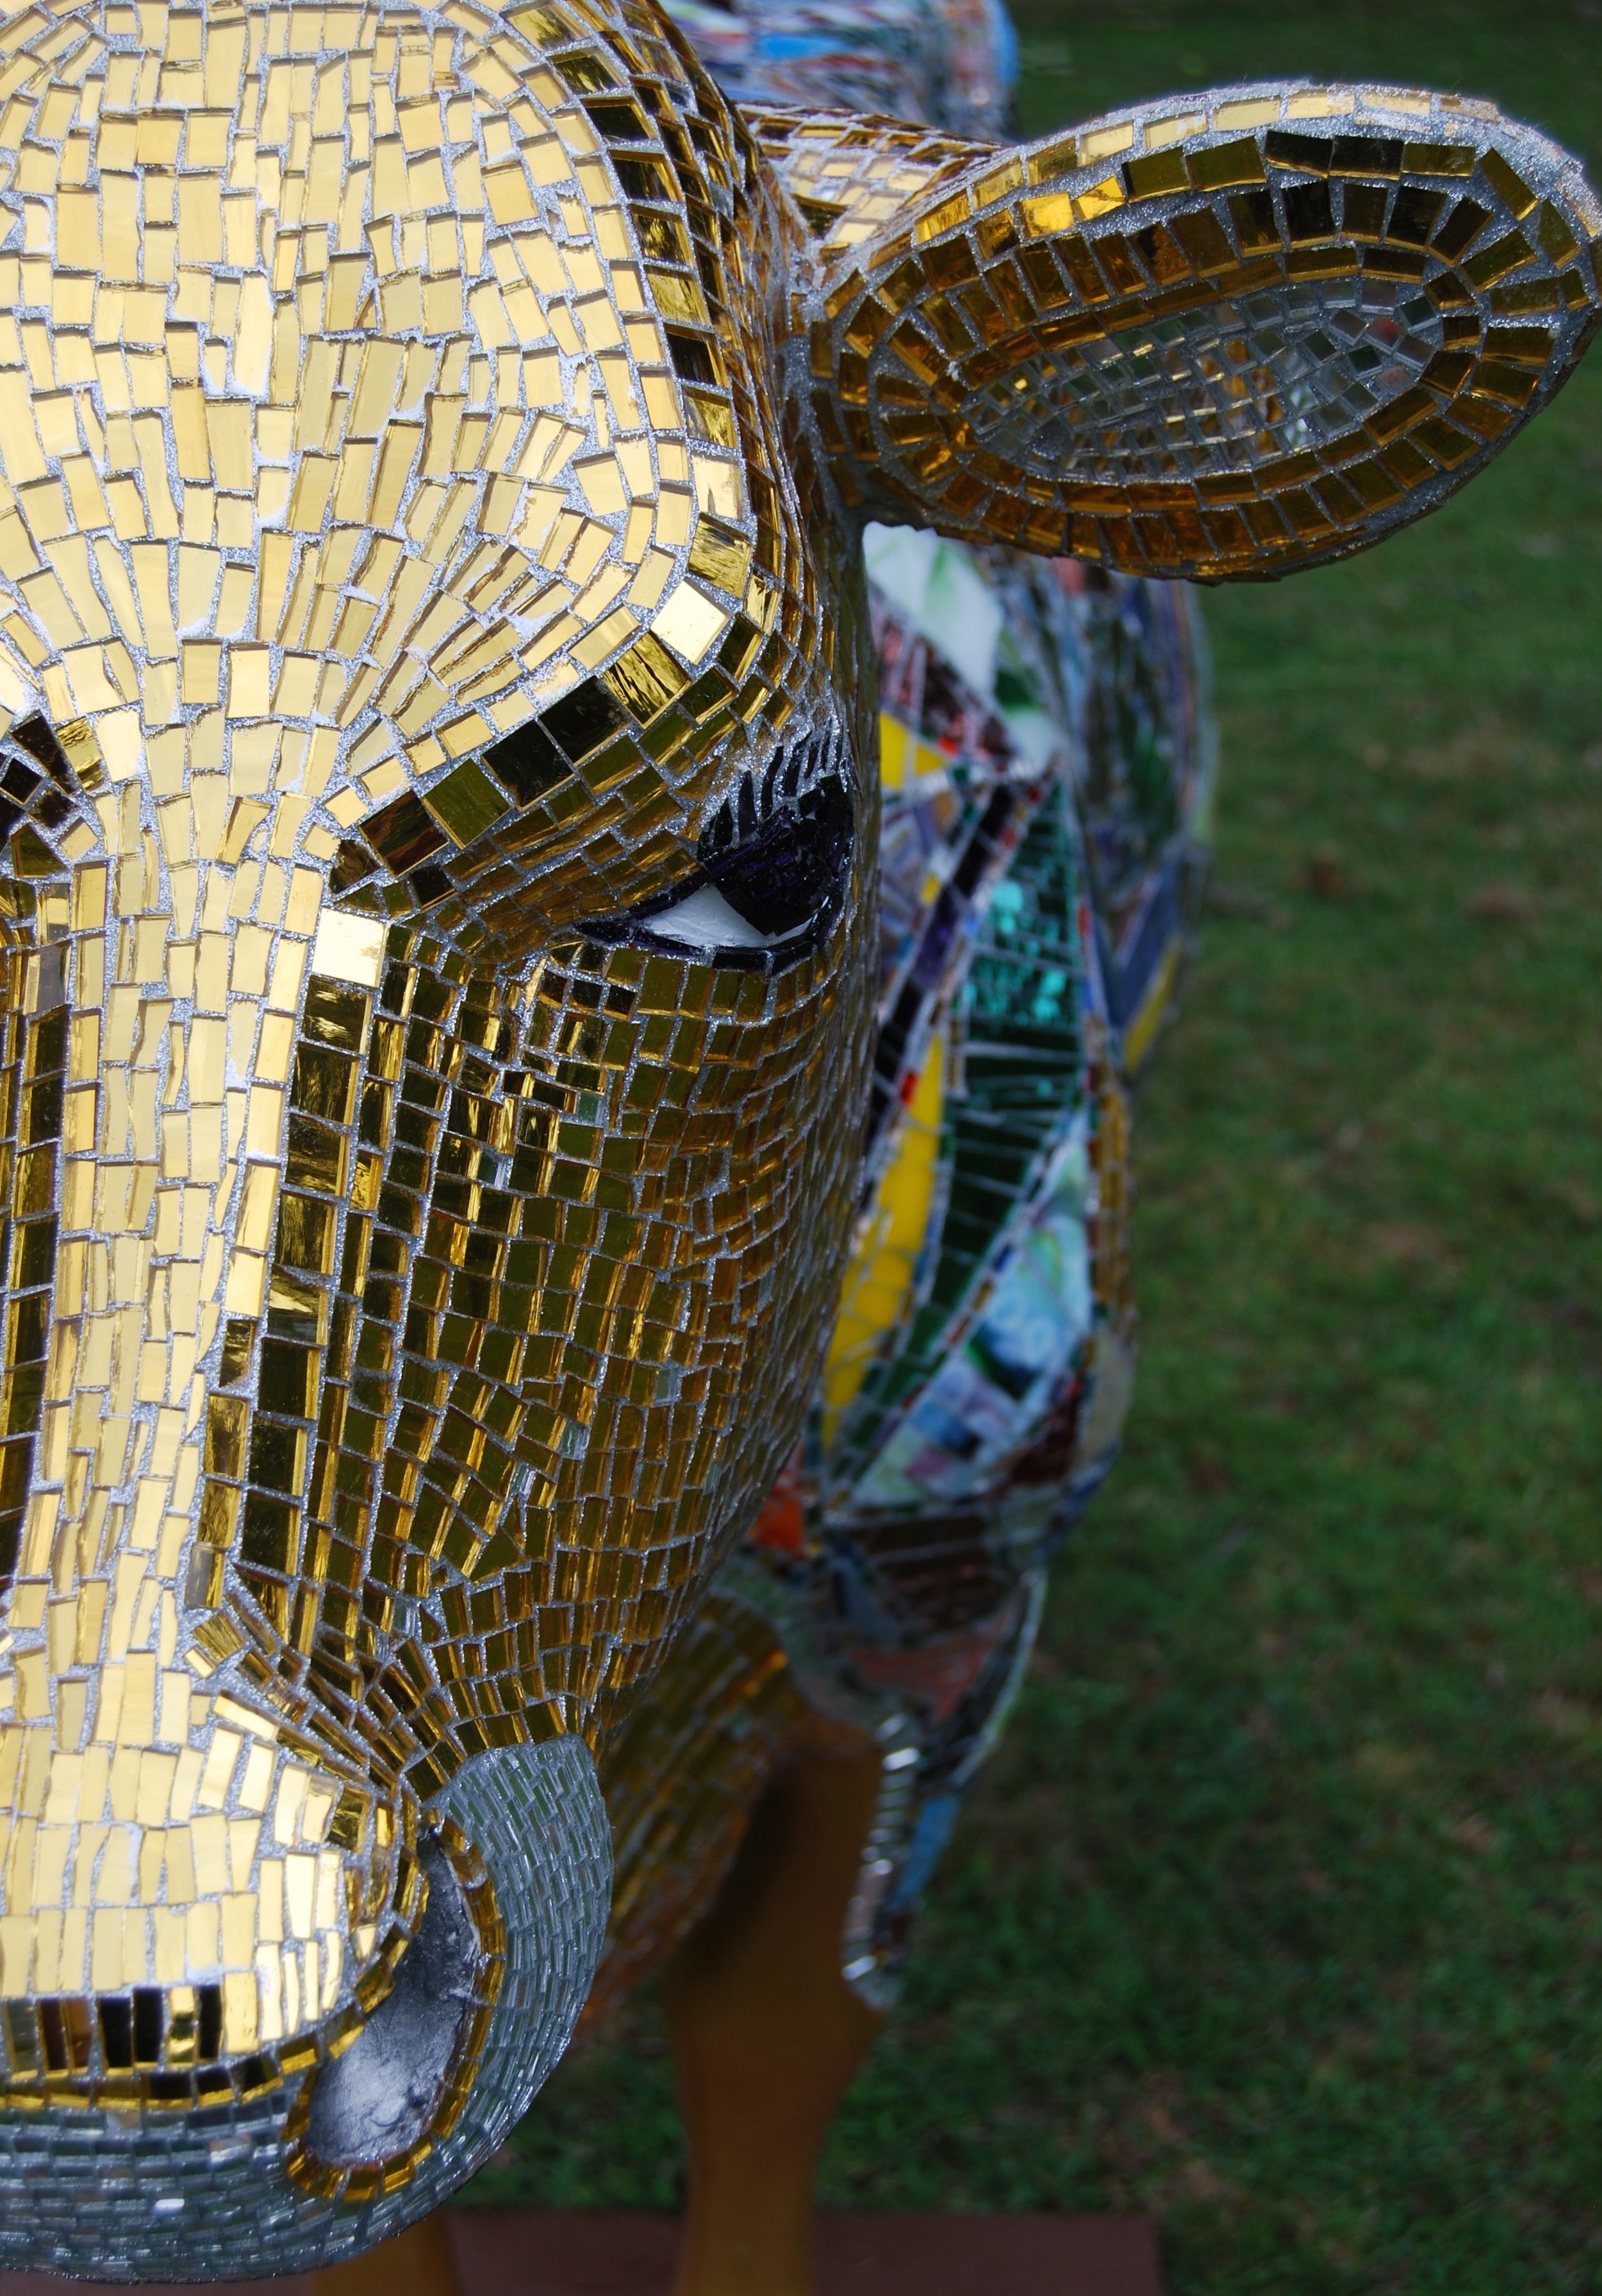 HOLY COW   !  RECYCLED   ART-GLASS MOSAIC SCULPTURE BY SHELITA BIRCHETT BENASH